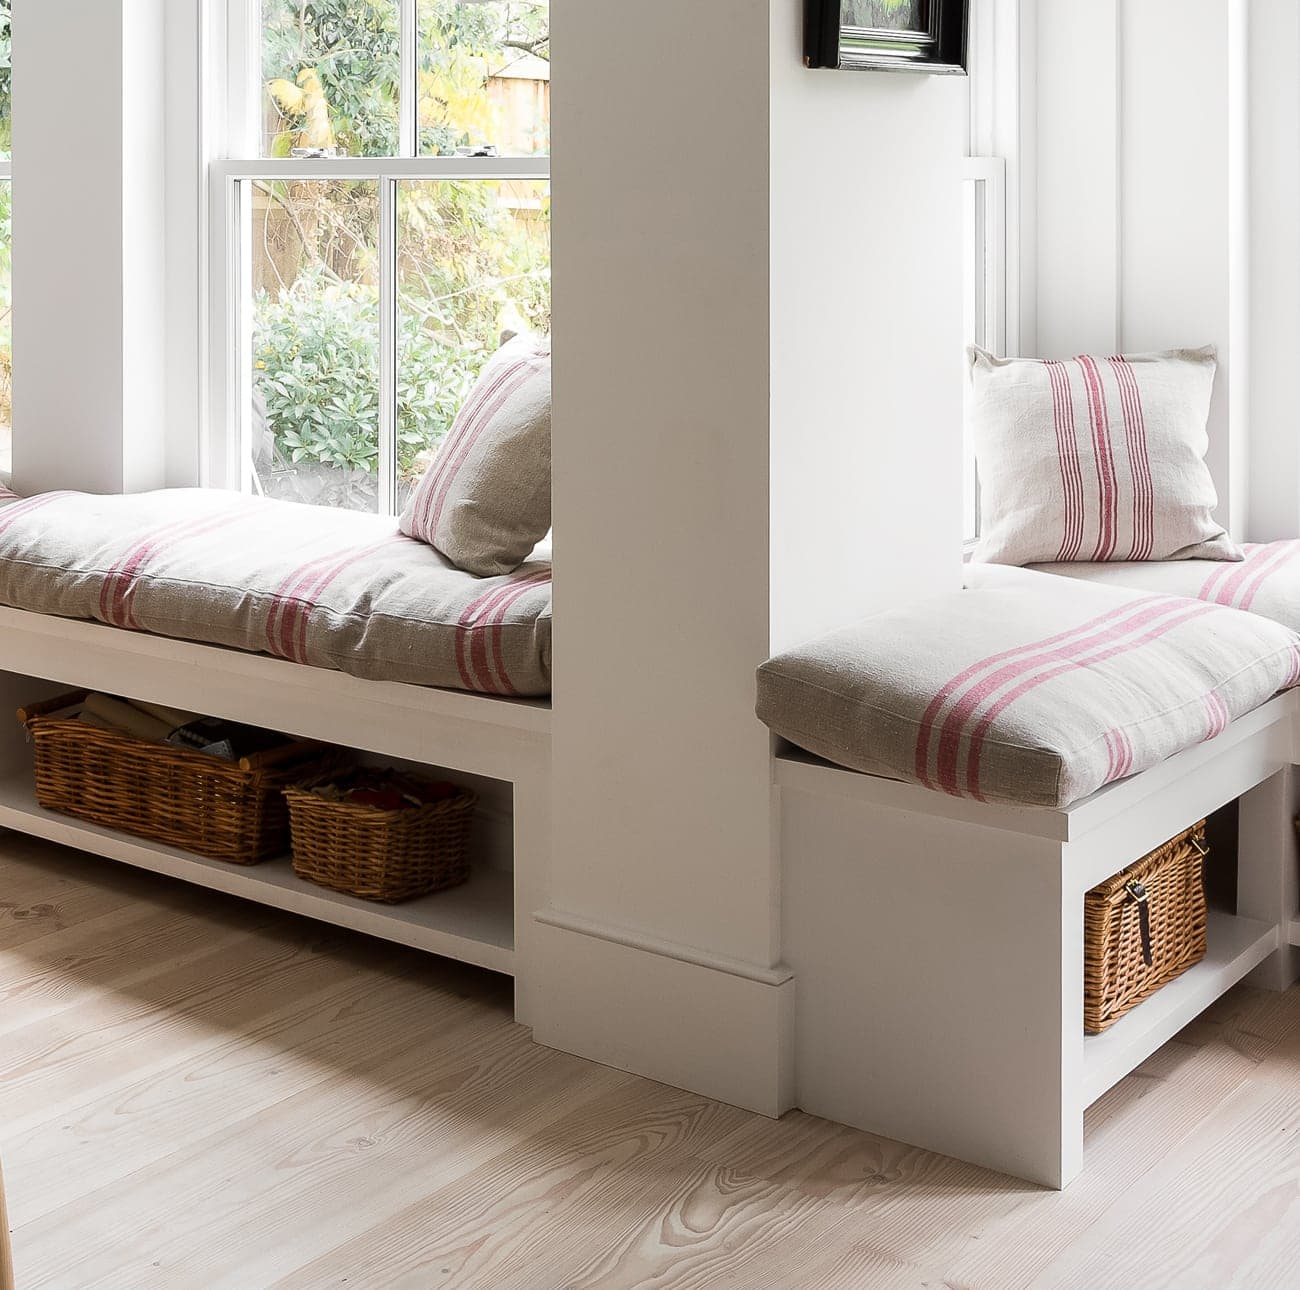 Window seating and storage